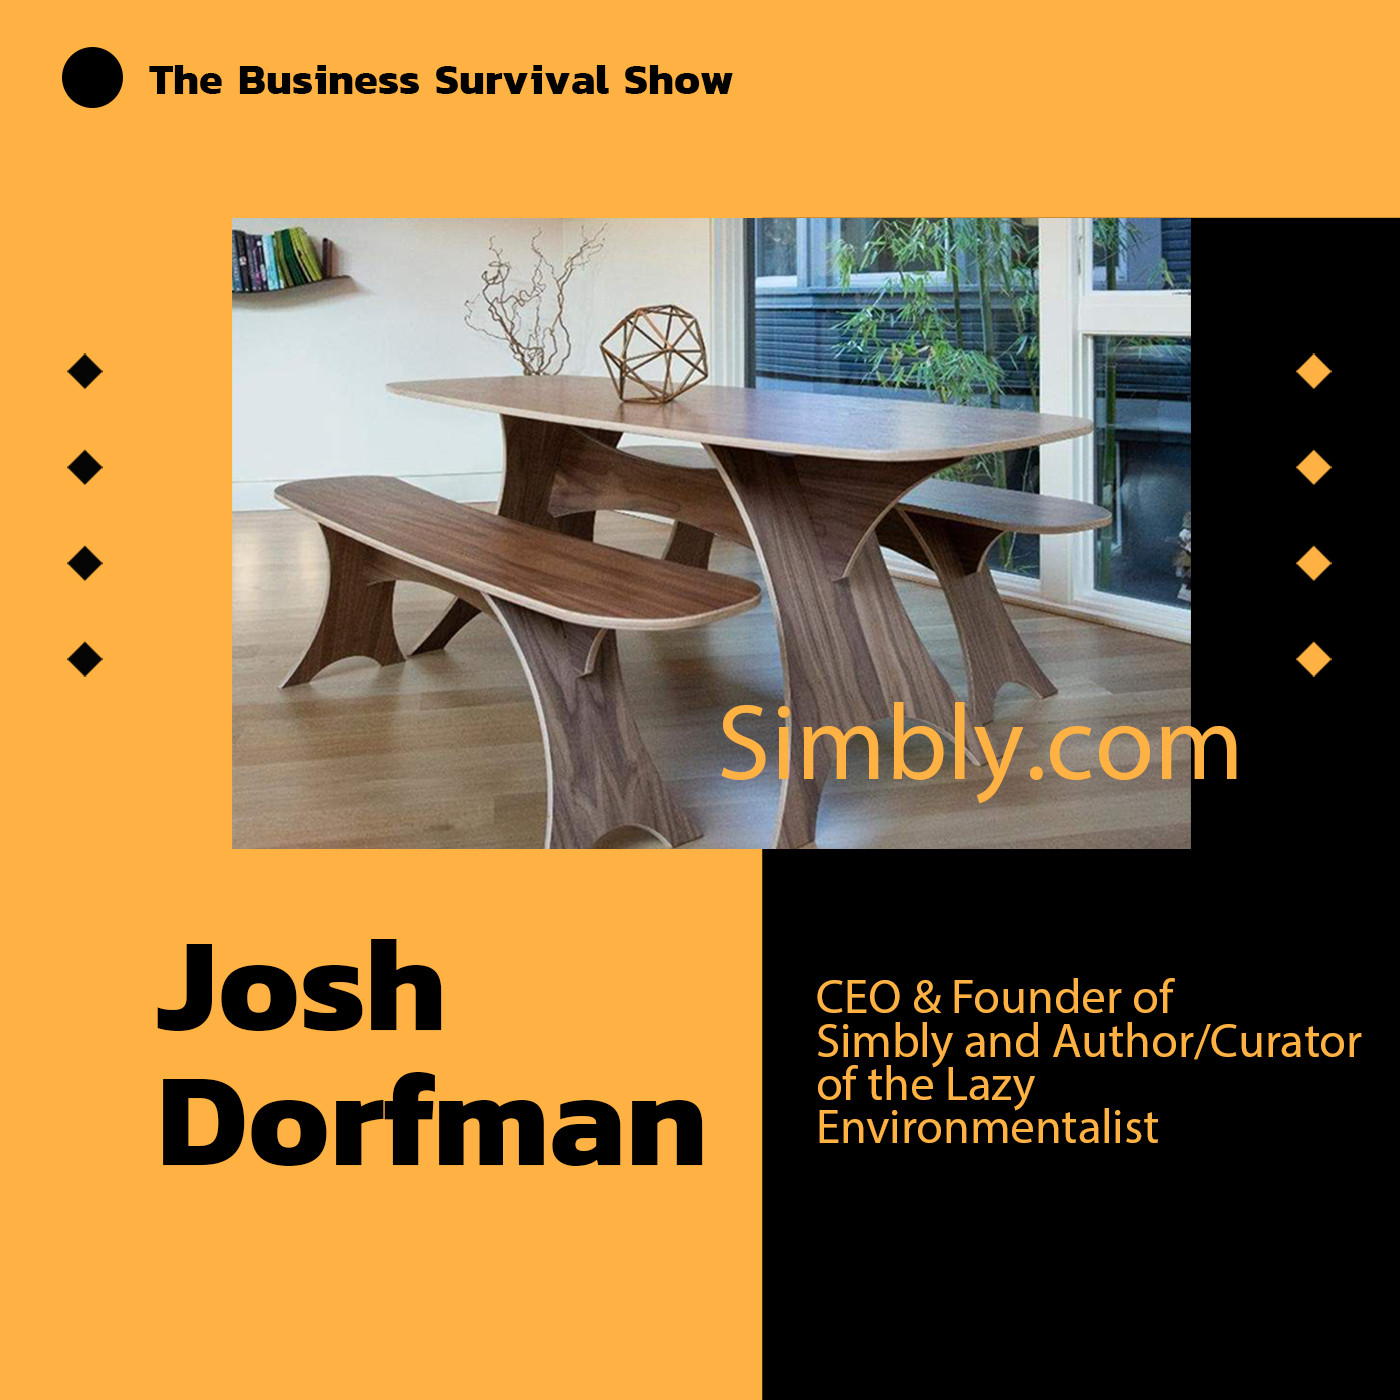 Simbly CEO Josh Dorfman adapts furniture business in the mist of a pandemic